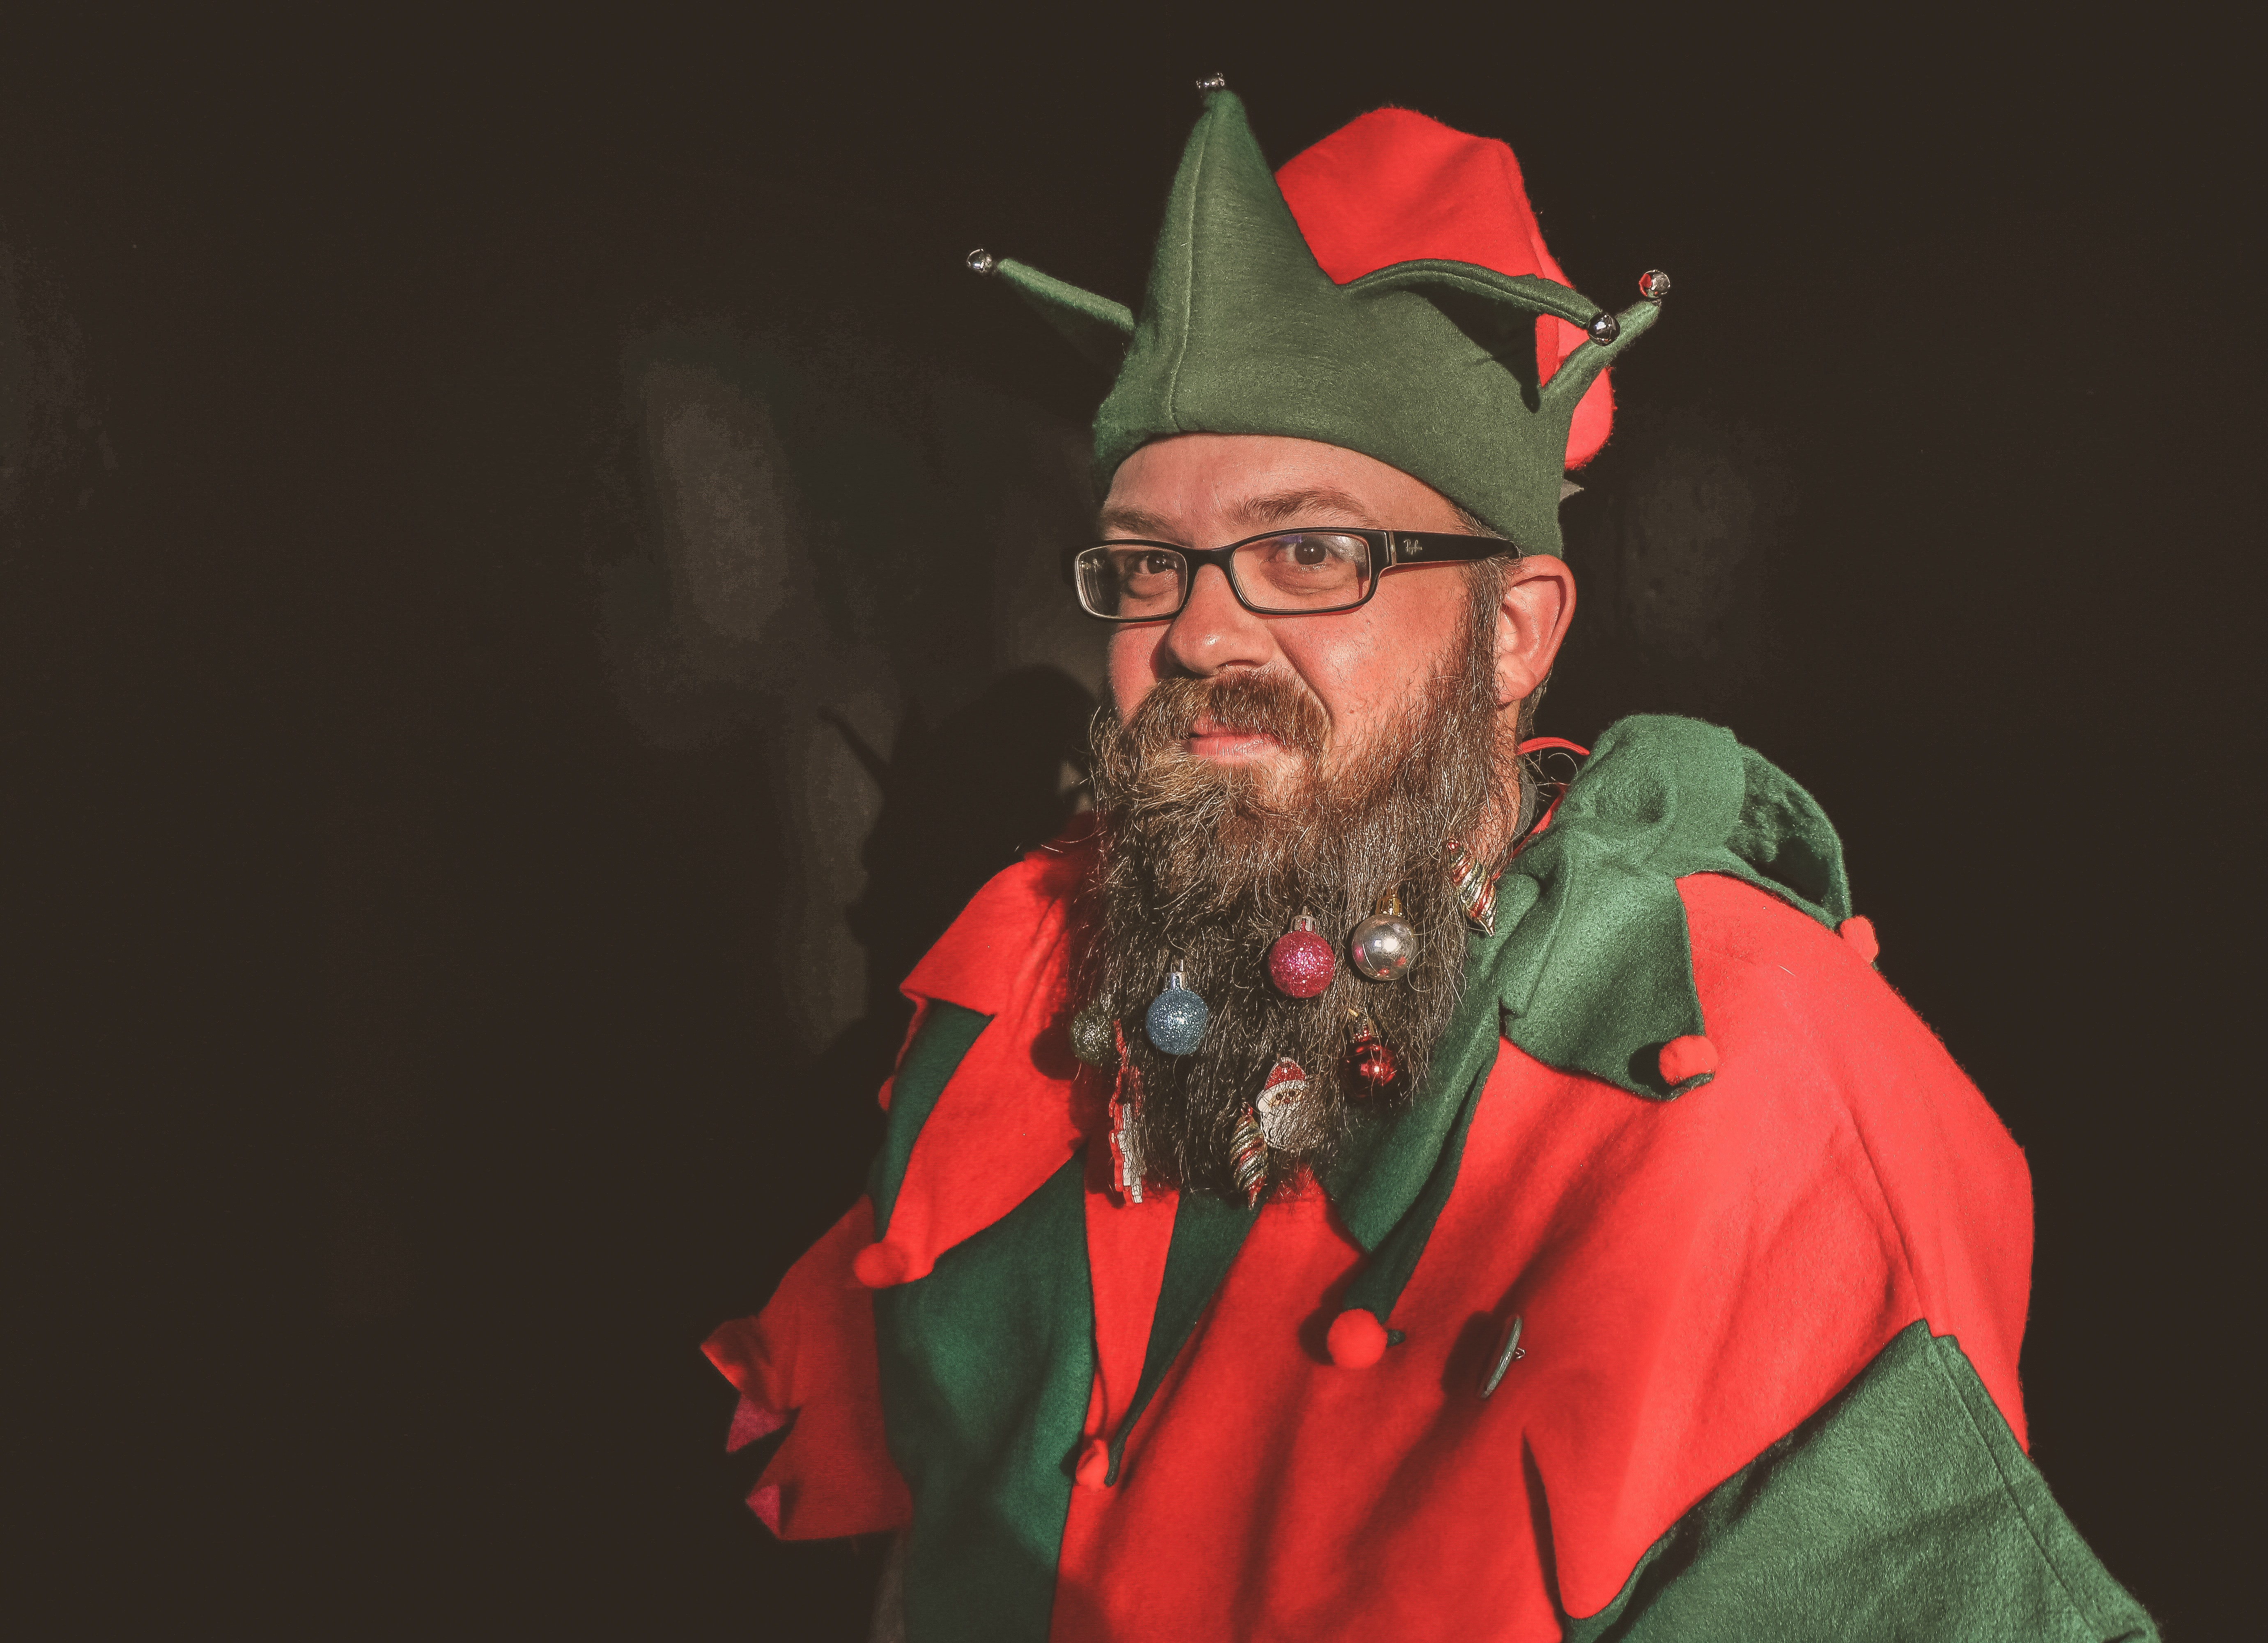 Man in Red and Green Elf Costume, Adult, Indoors, Lifestyle, Looking, HQ Photo